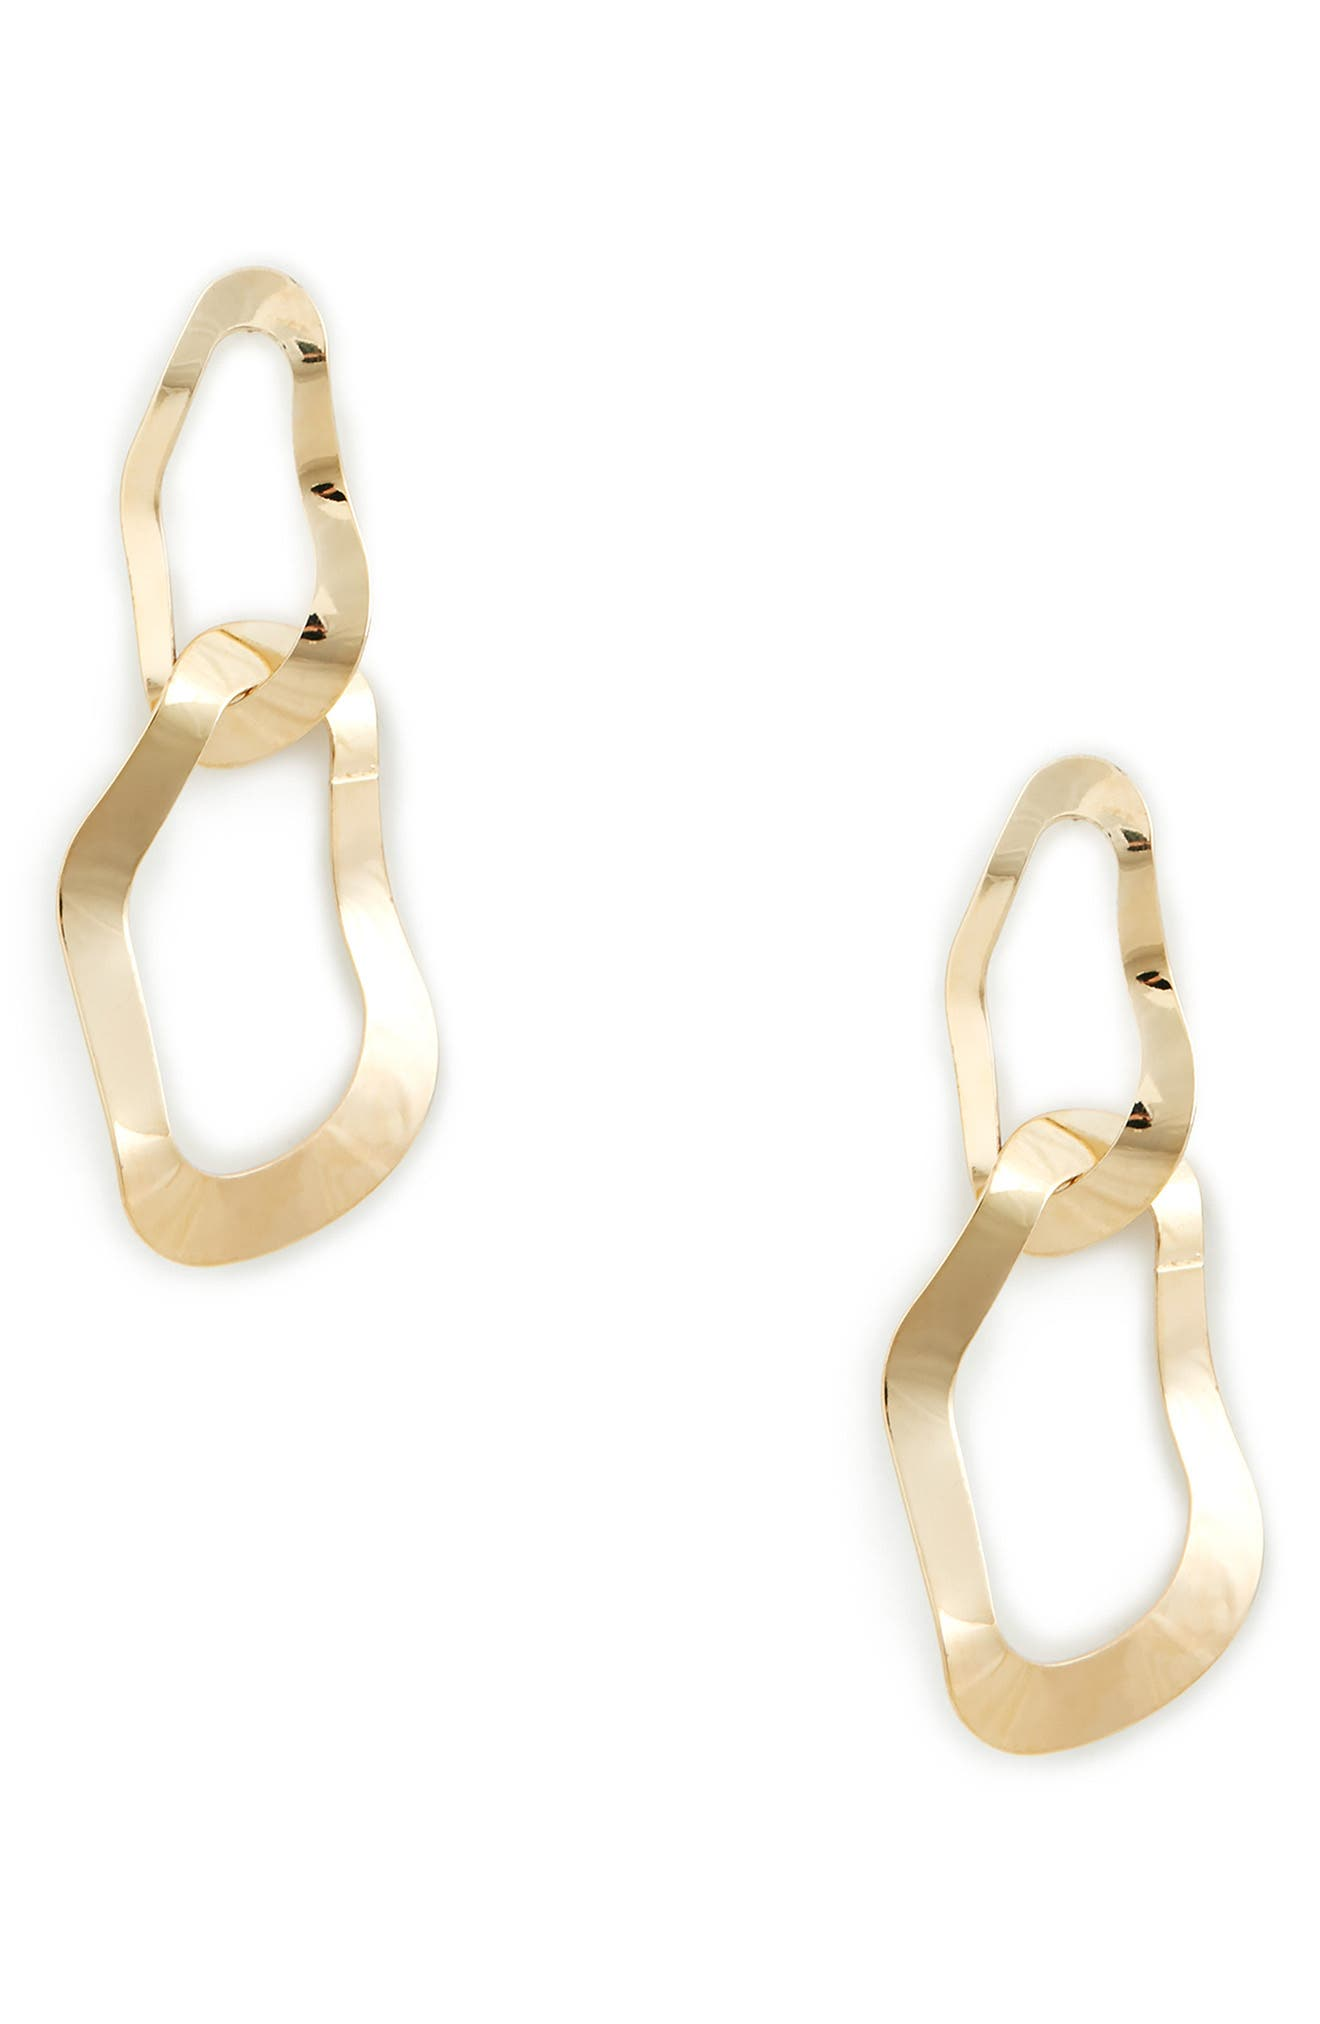 Twisted Metal Statement Earrings,                             Main thumbnail 1, color,                             Gold